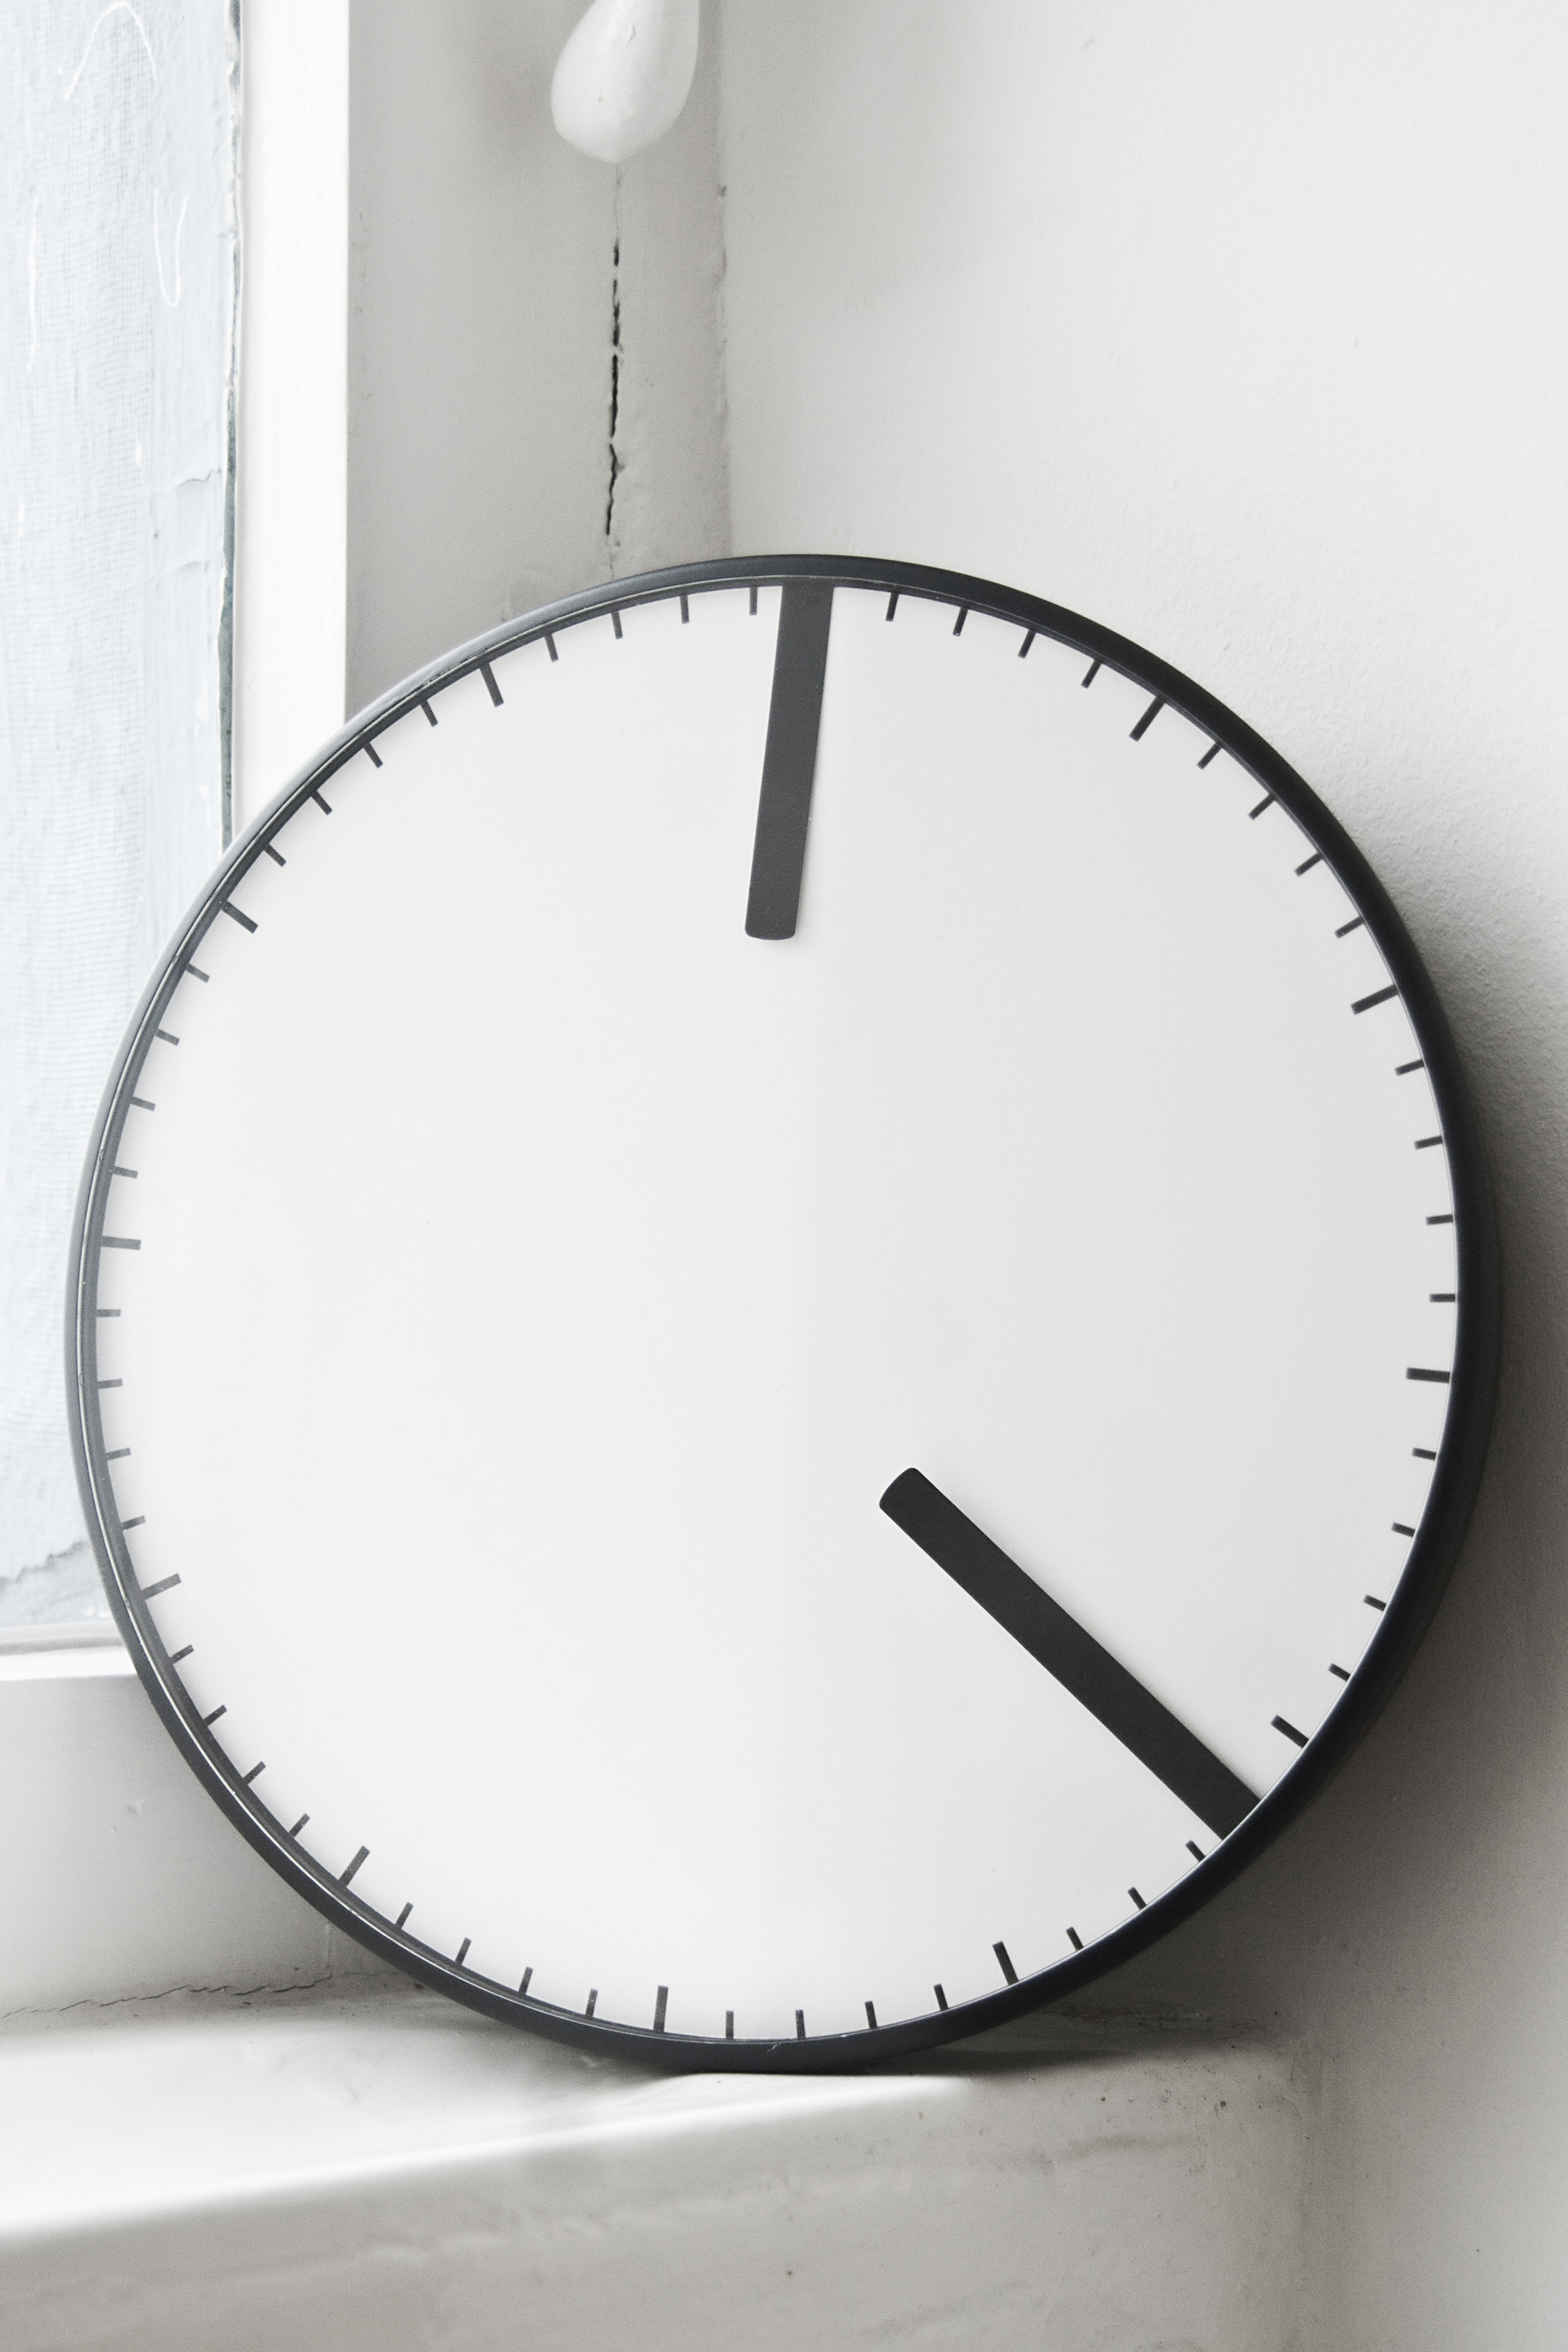 Oval Clock Face Cling Studio Rem